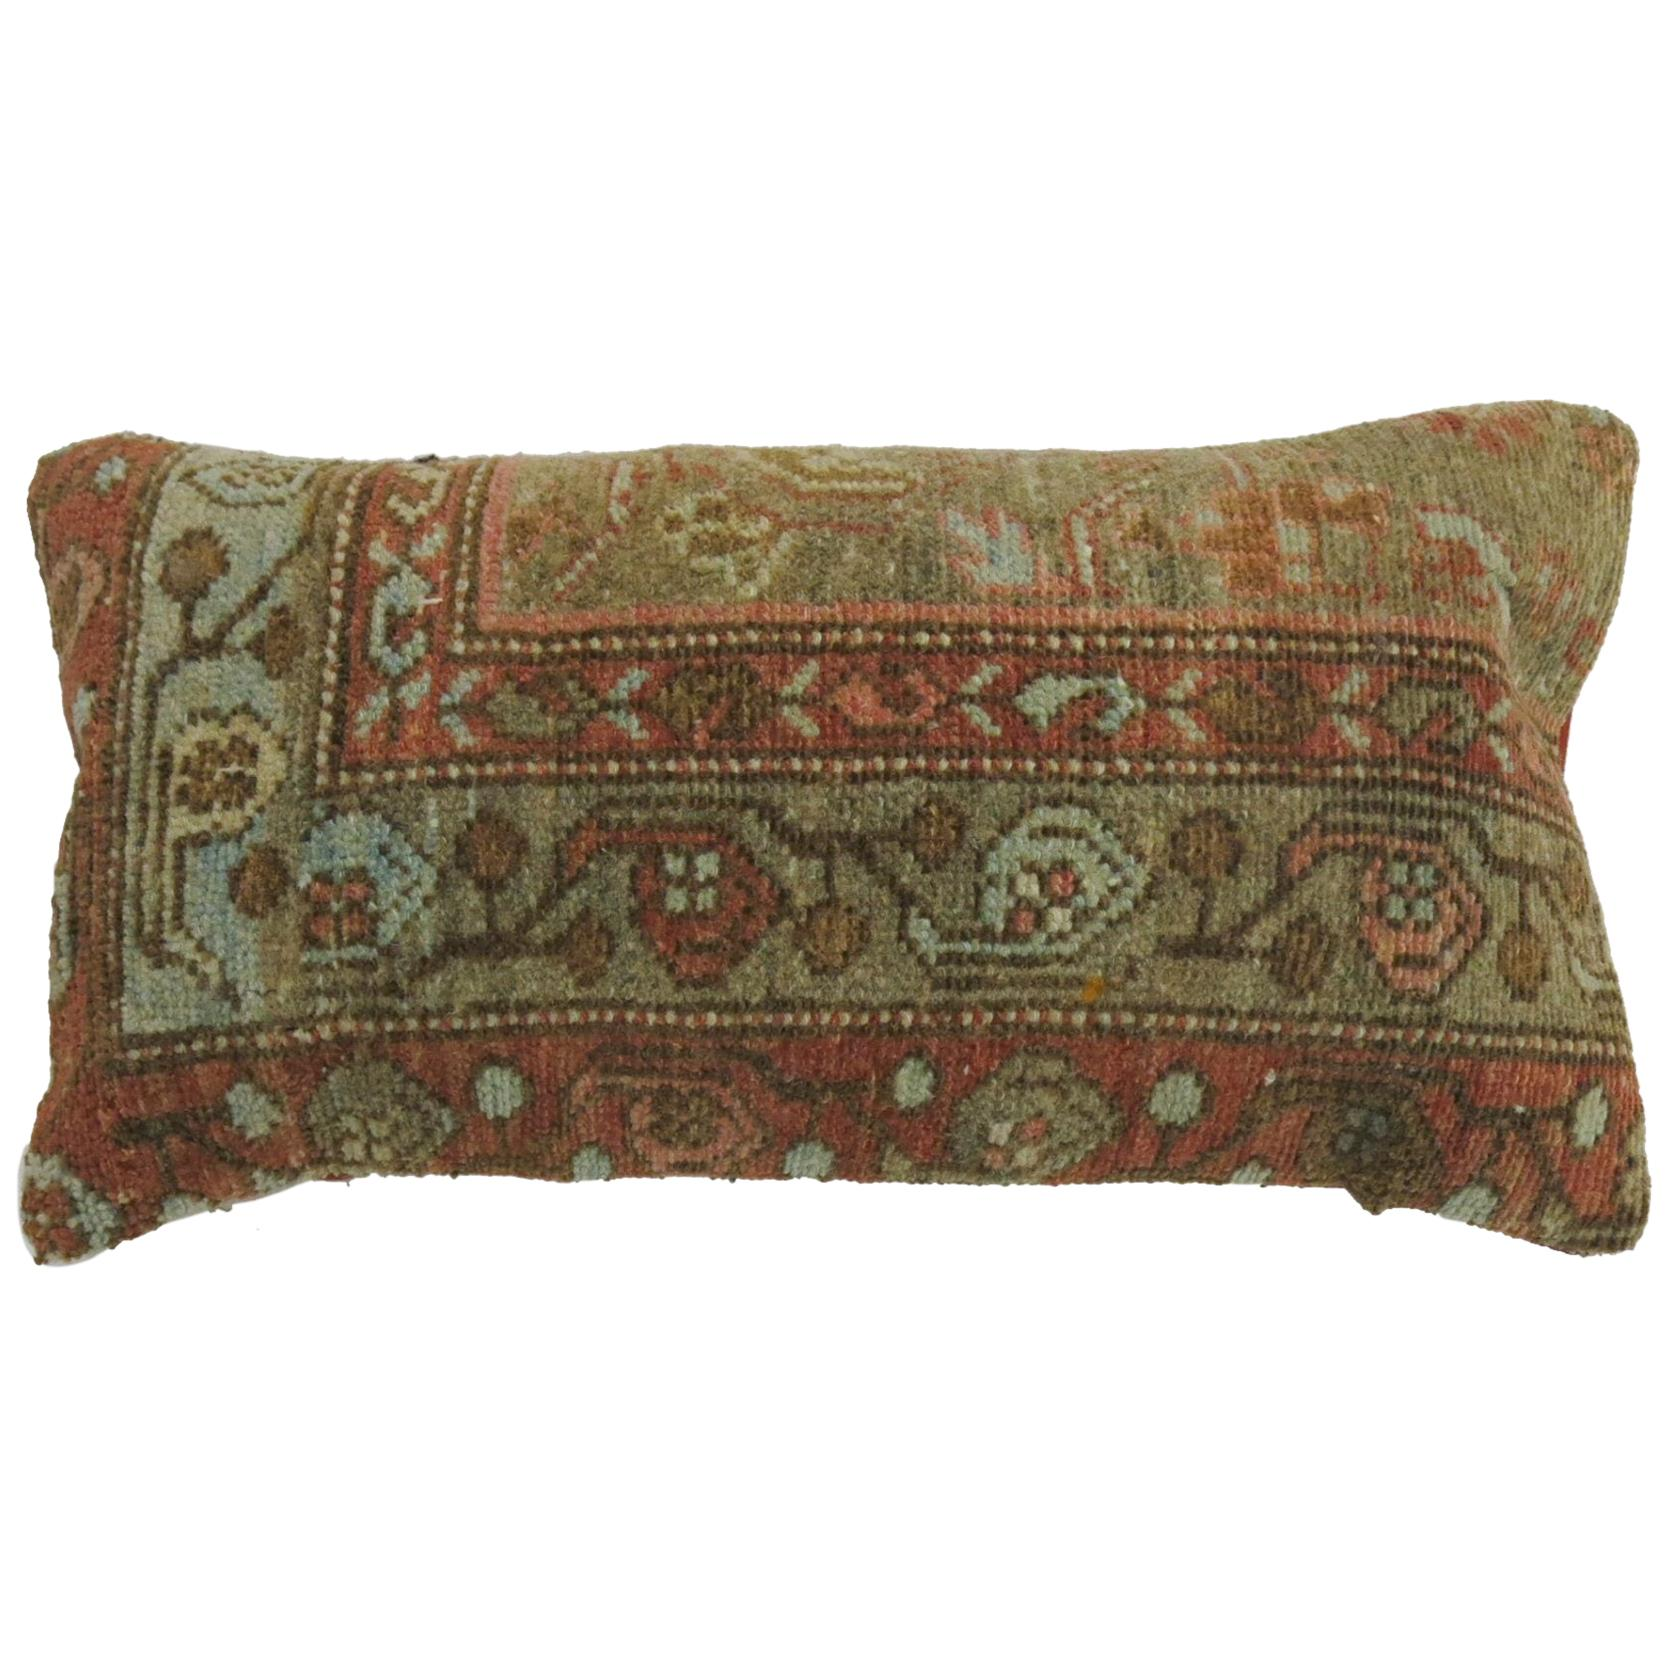 Persian Bolster Rug Pillow in Caramel Brown Terracotta Accents